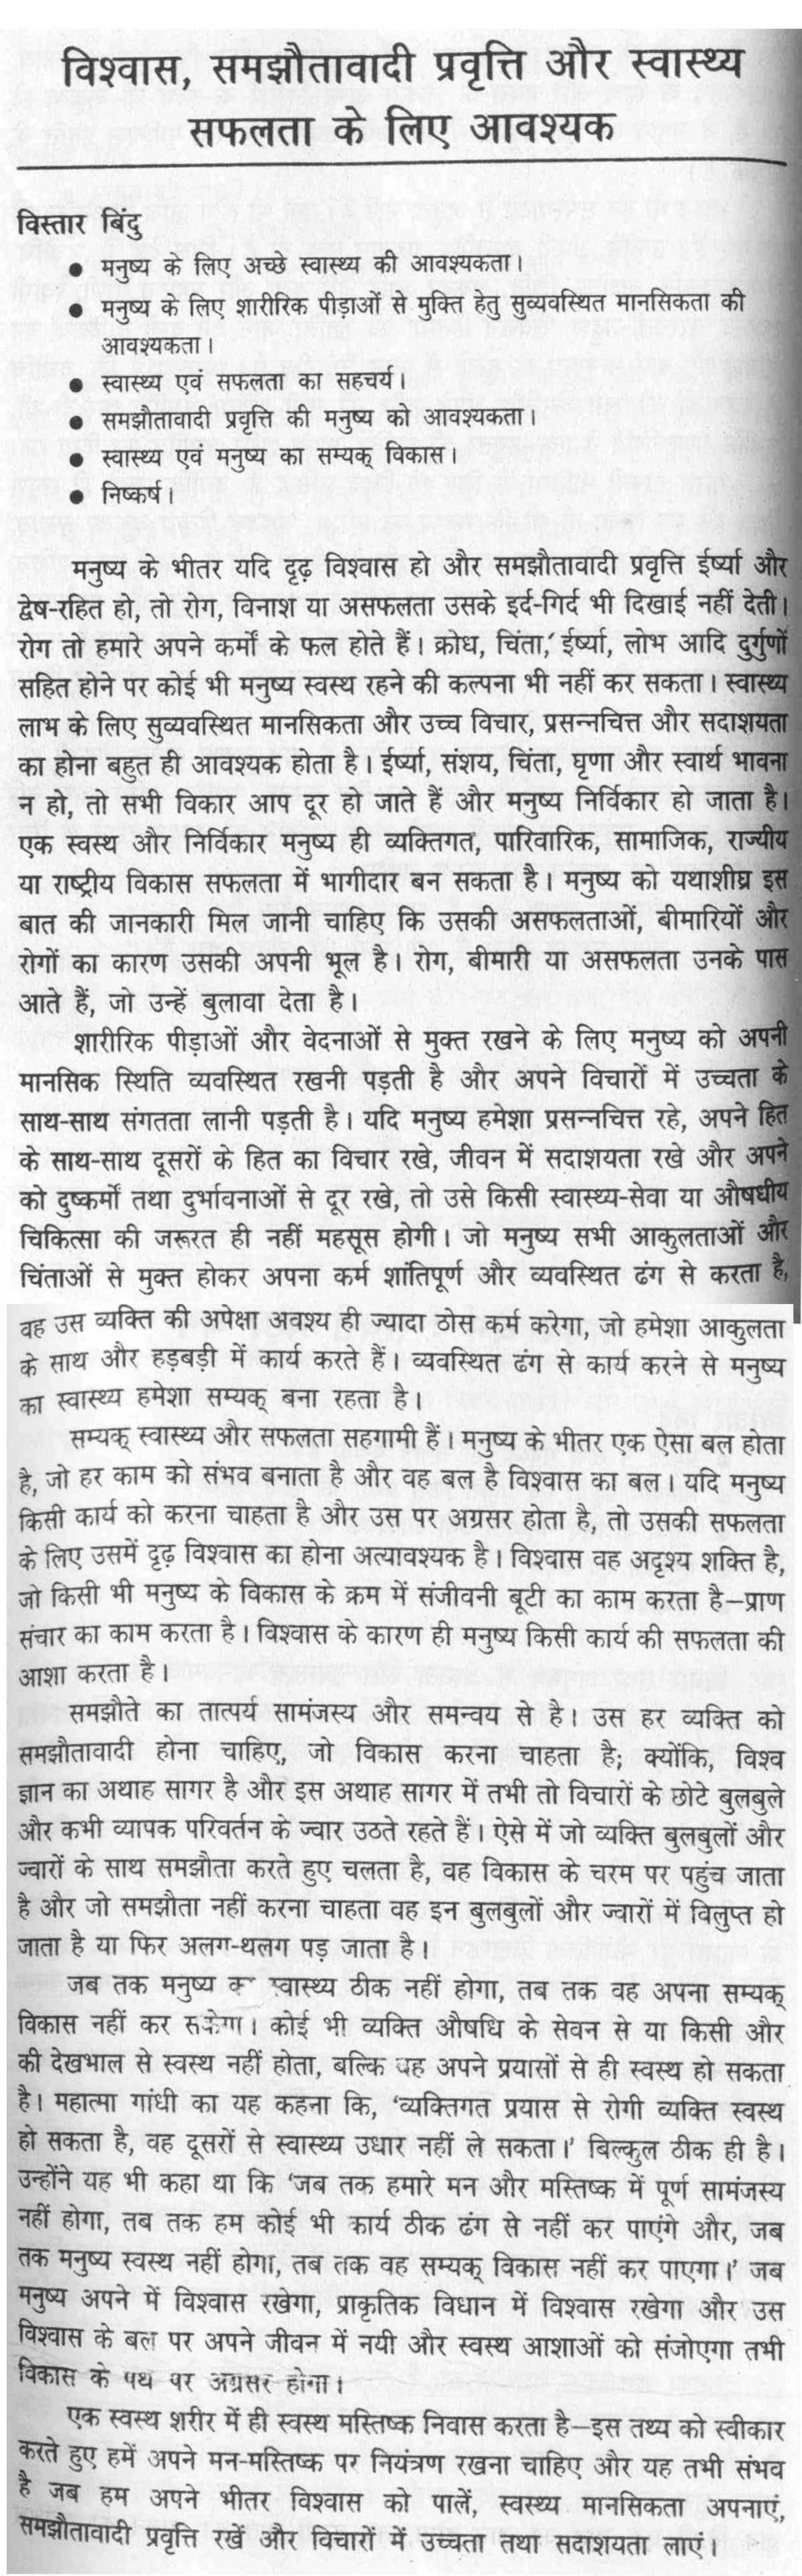 004 Success Essay 10085 Thumb Wonderful Outline Formula In Hindi Education Is Key To 1920